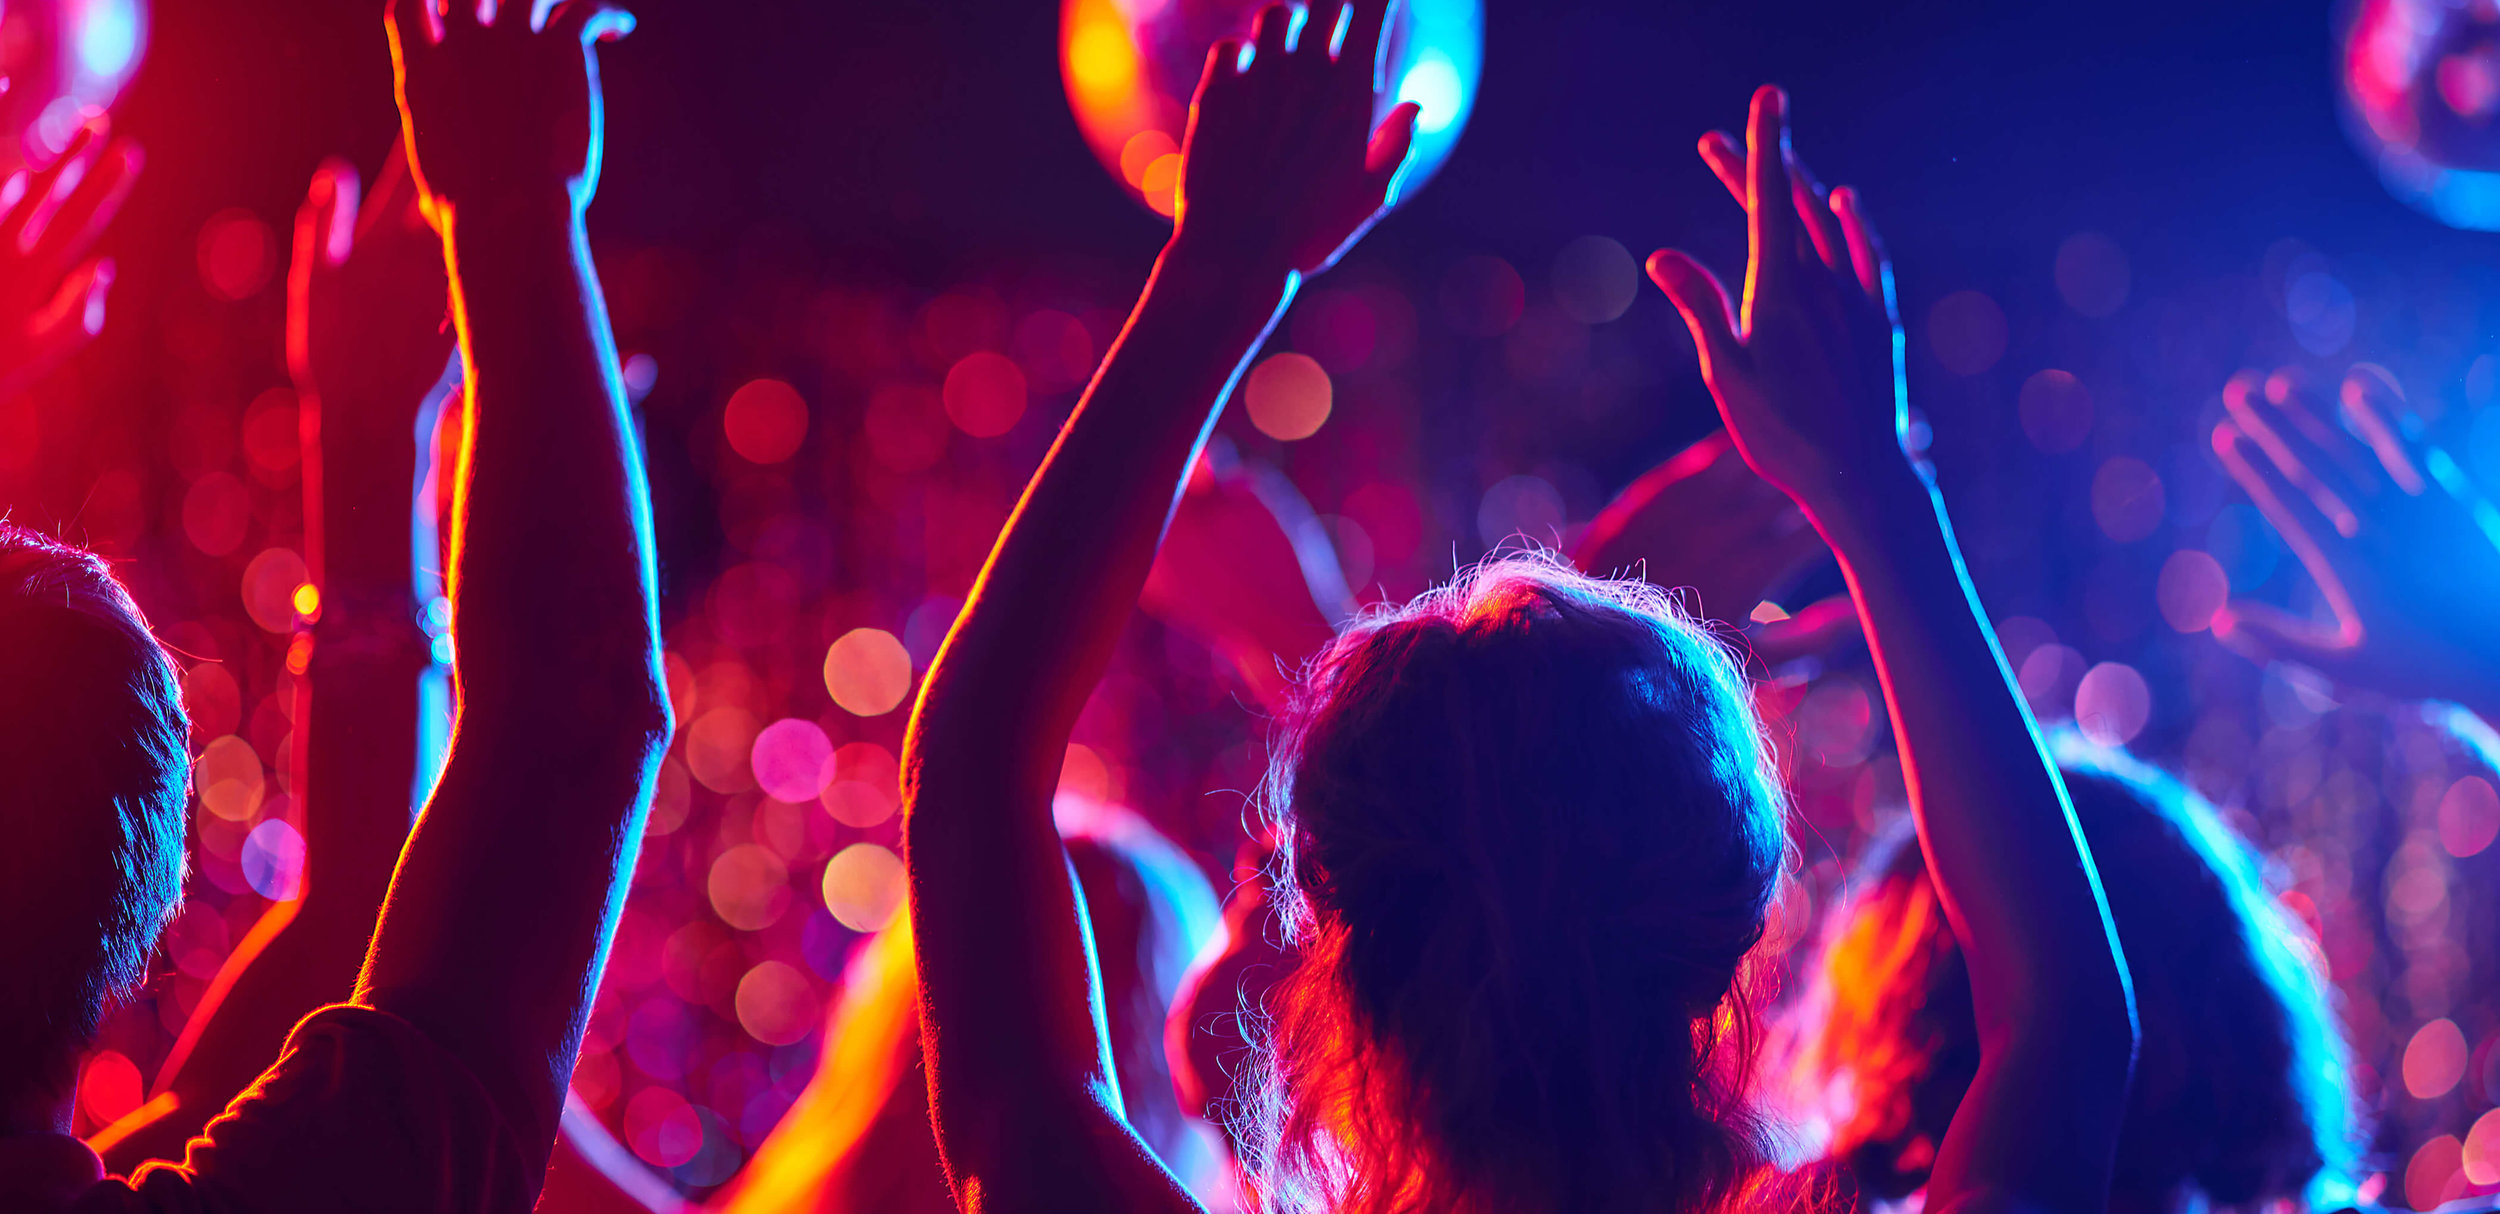 Experiences for Teens - Take a bow at your very own circus themed extravaganza or dance the night away in a surged out dance floor filled with neon colors and glow lights. Either experience will dazzle your guests